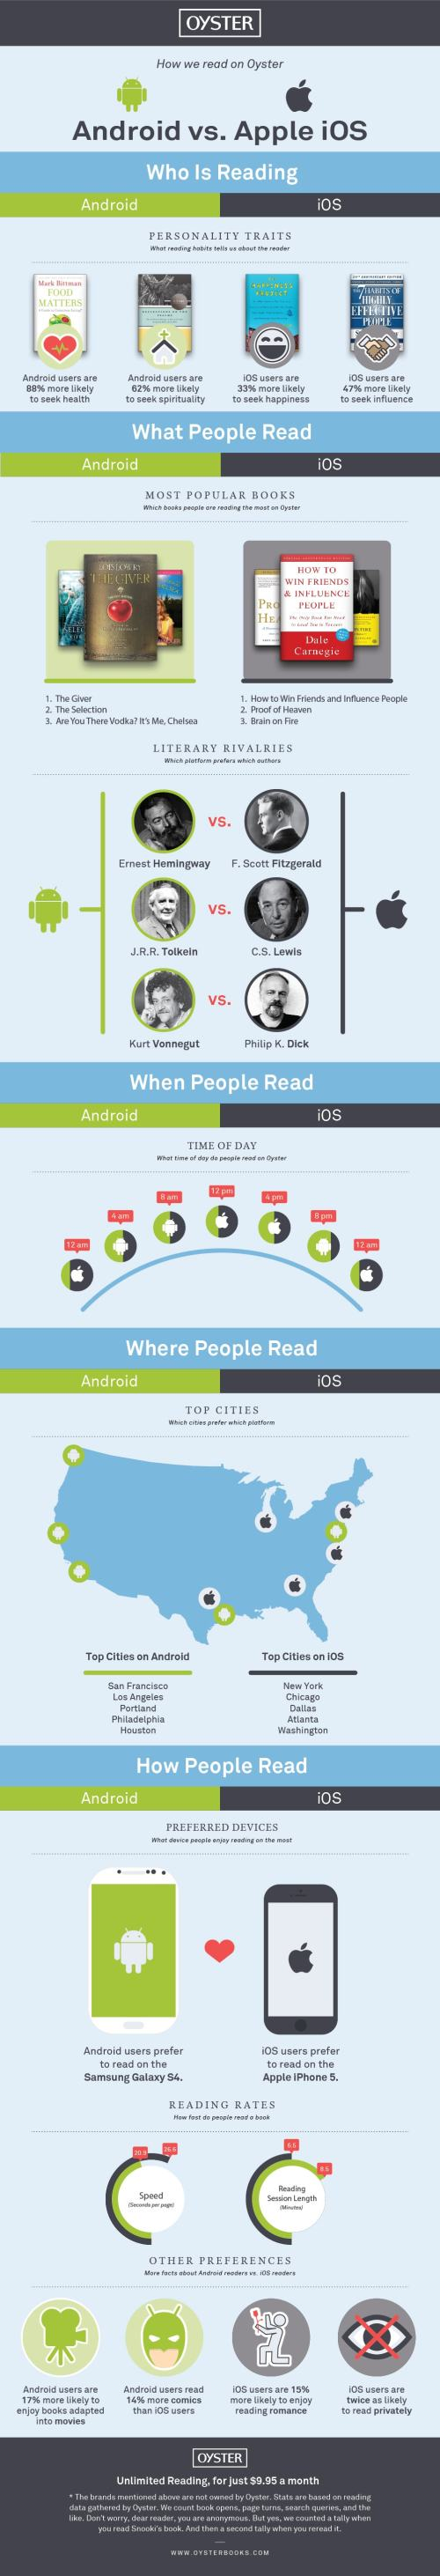 Infographic: Android vs iOS Reading Habits via Oyster Infographic